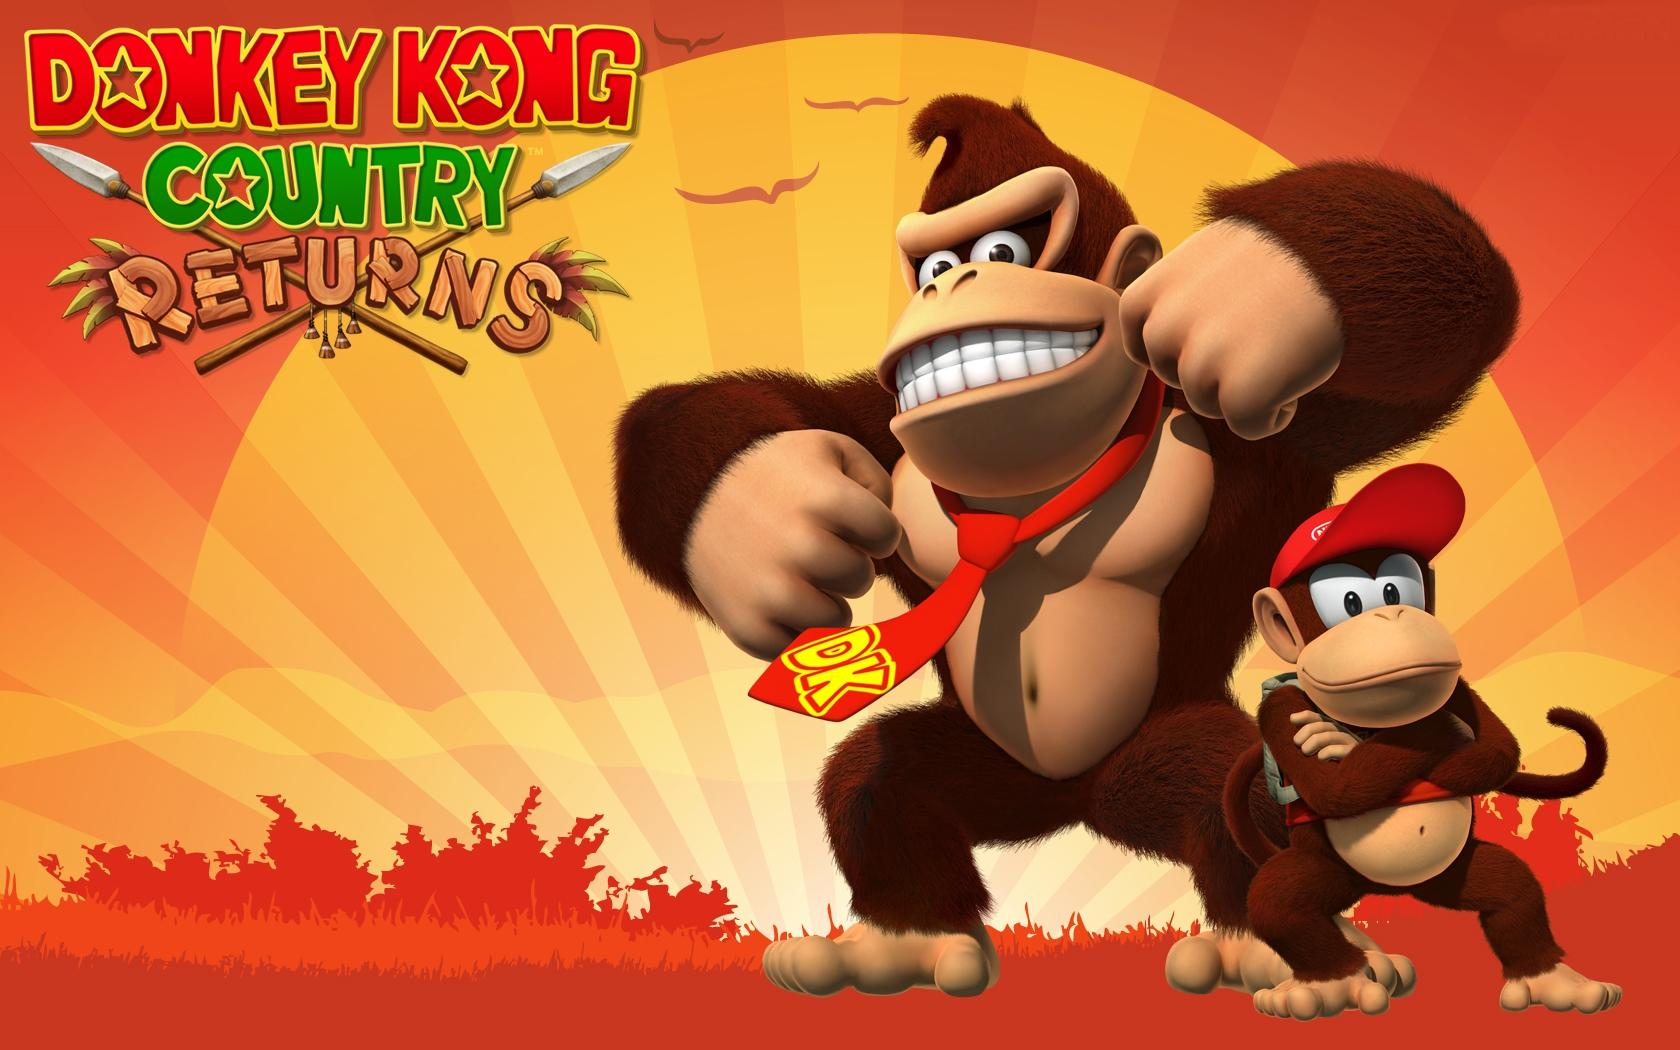 Donkey Kong Country Returns ganha versão exclusiva FULL HD na China